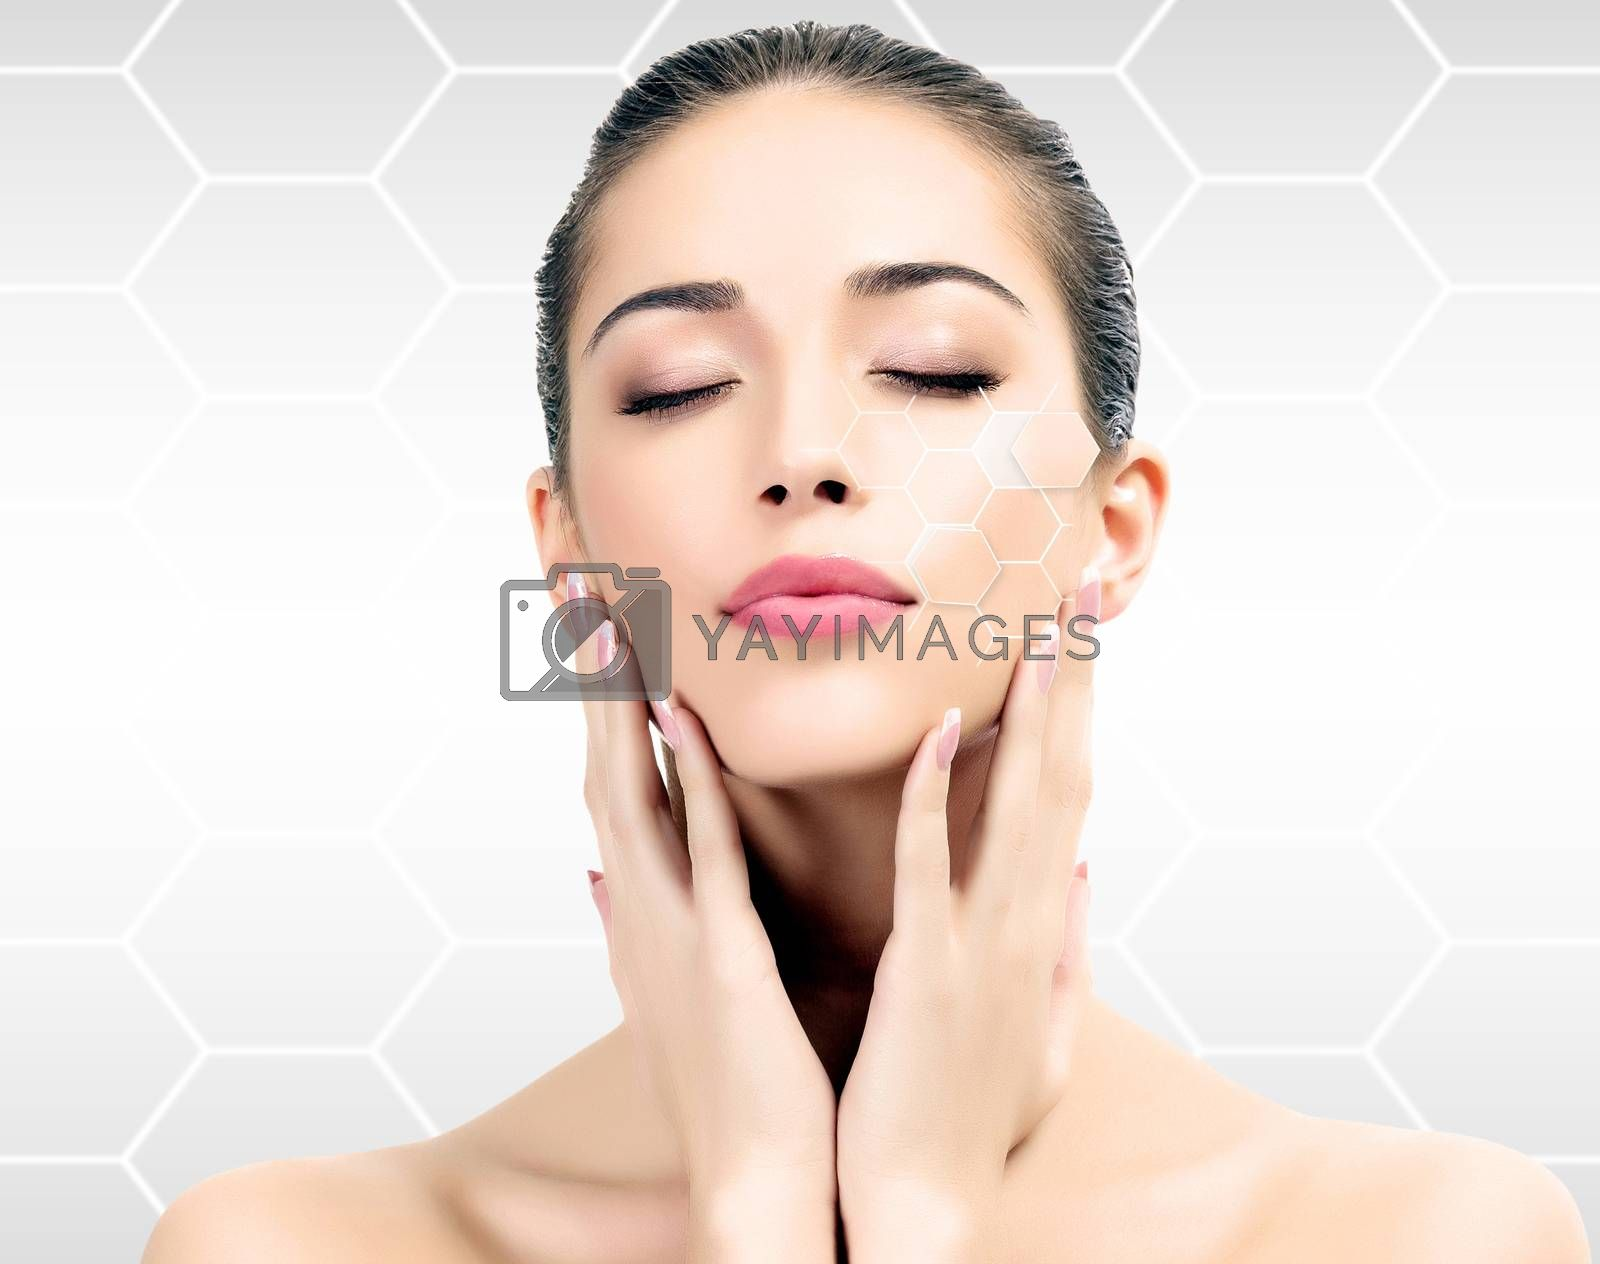 Beautiful girl with clean fresh skin, skin treatments concept